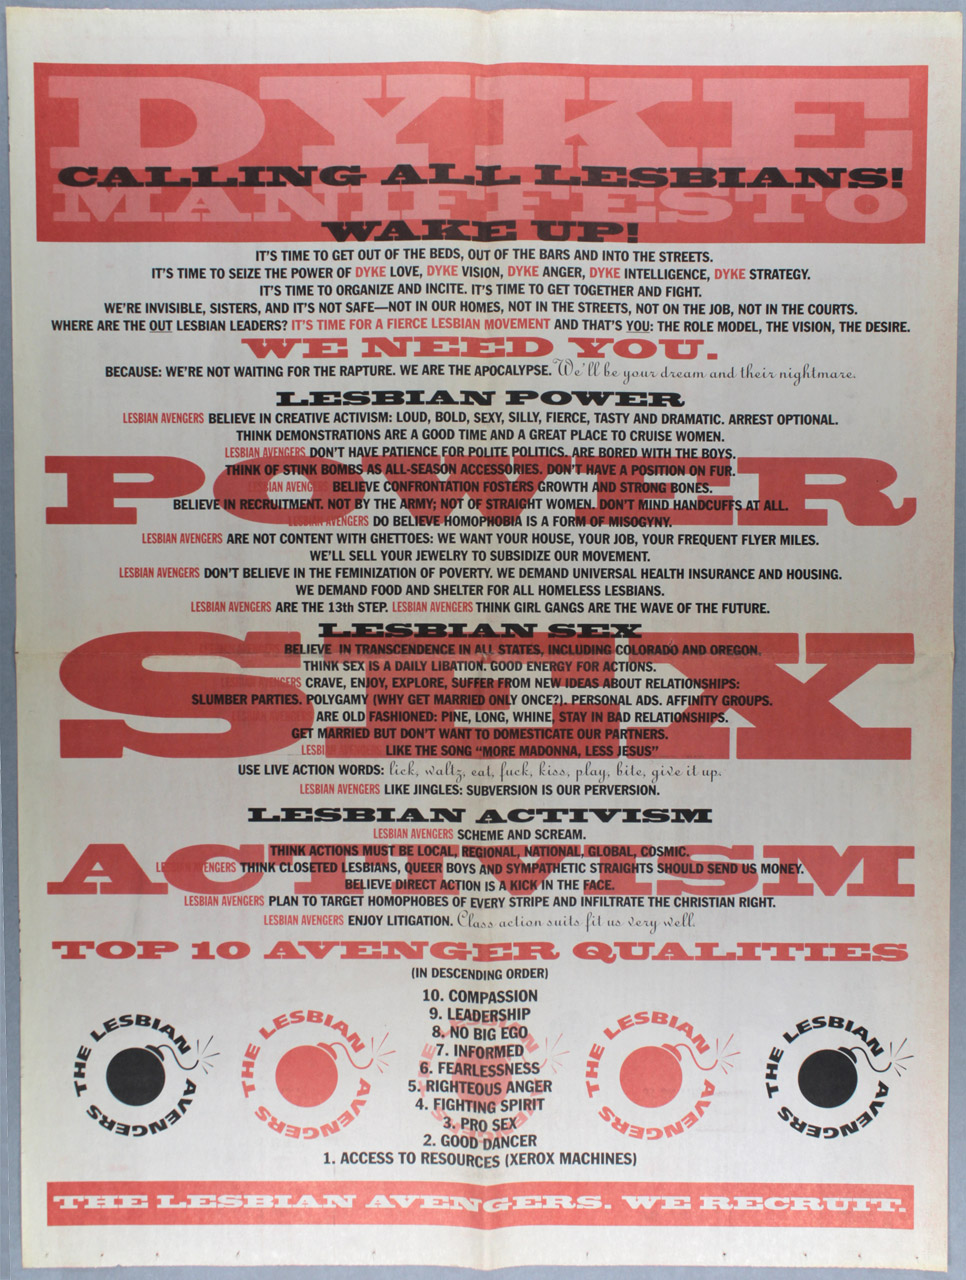 Lesbian Avengers Manifesto and Action Poster, designed by Carrie Moyer, New York, c. 1992-1994